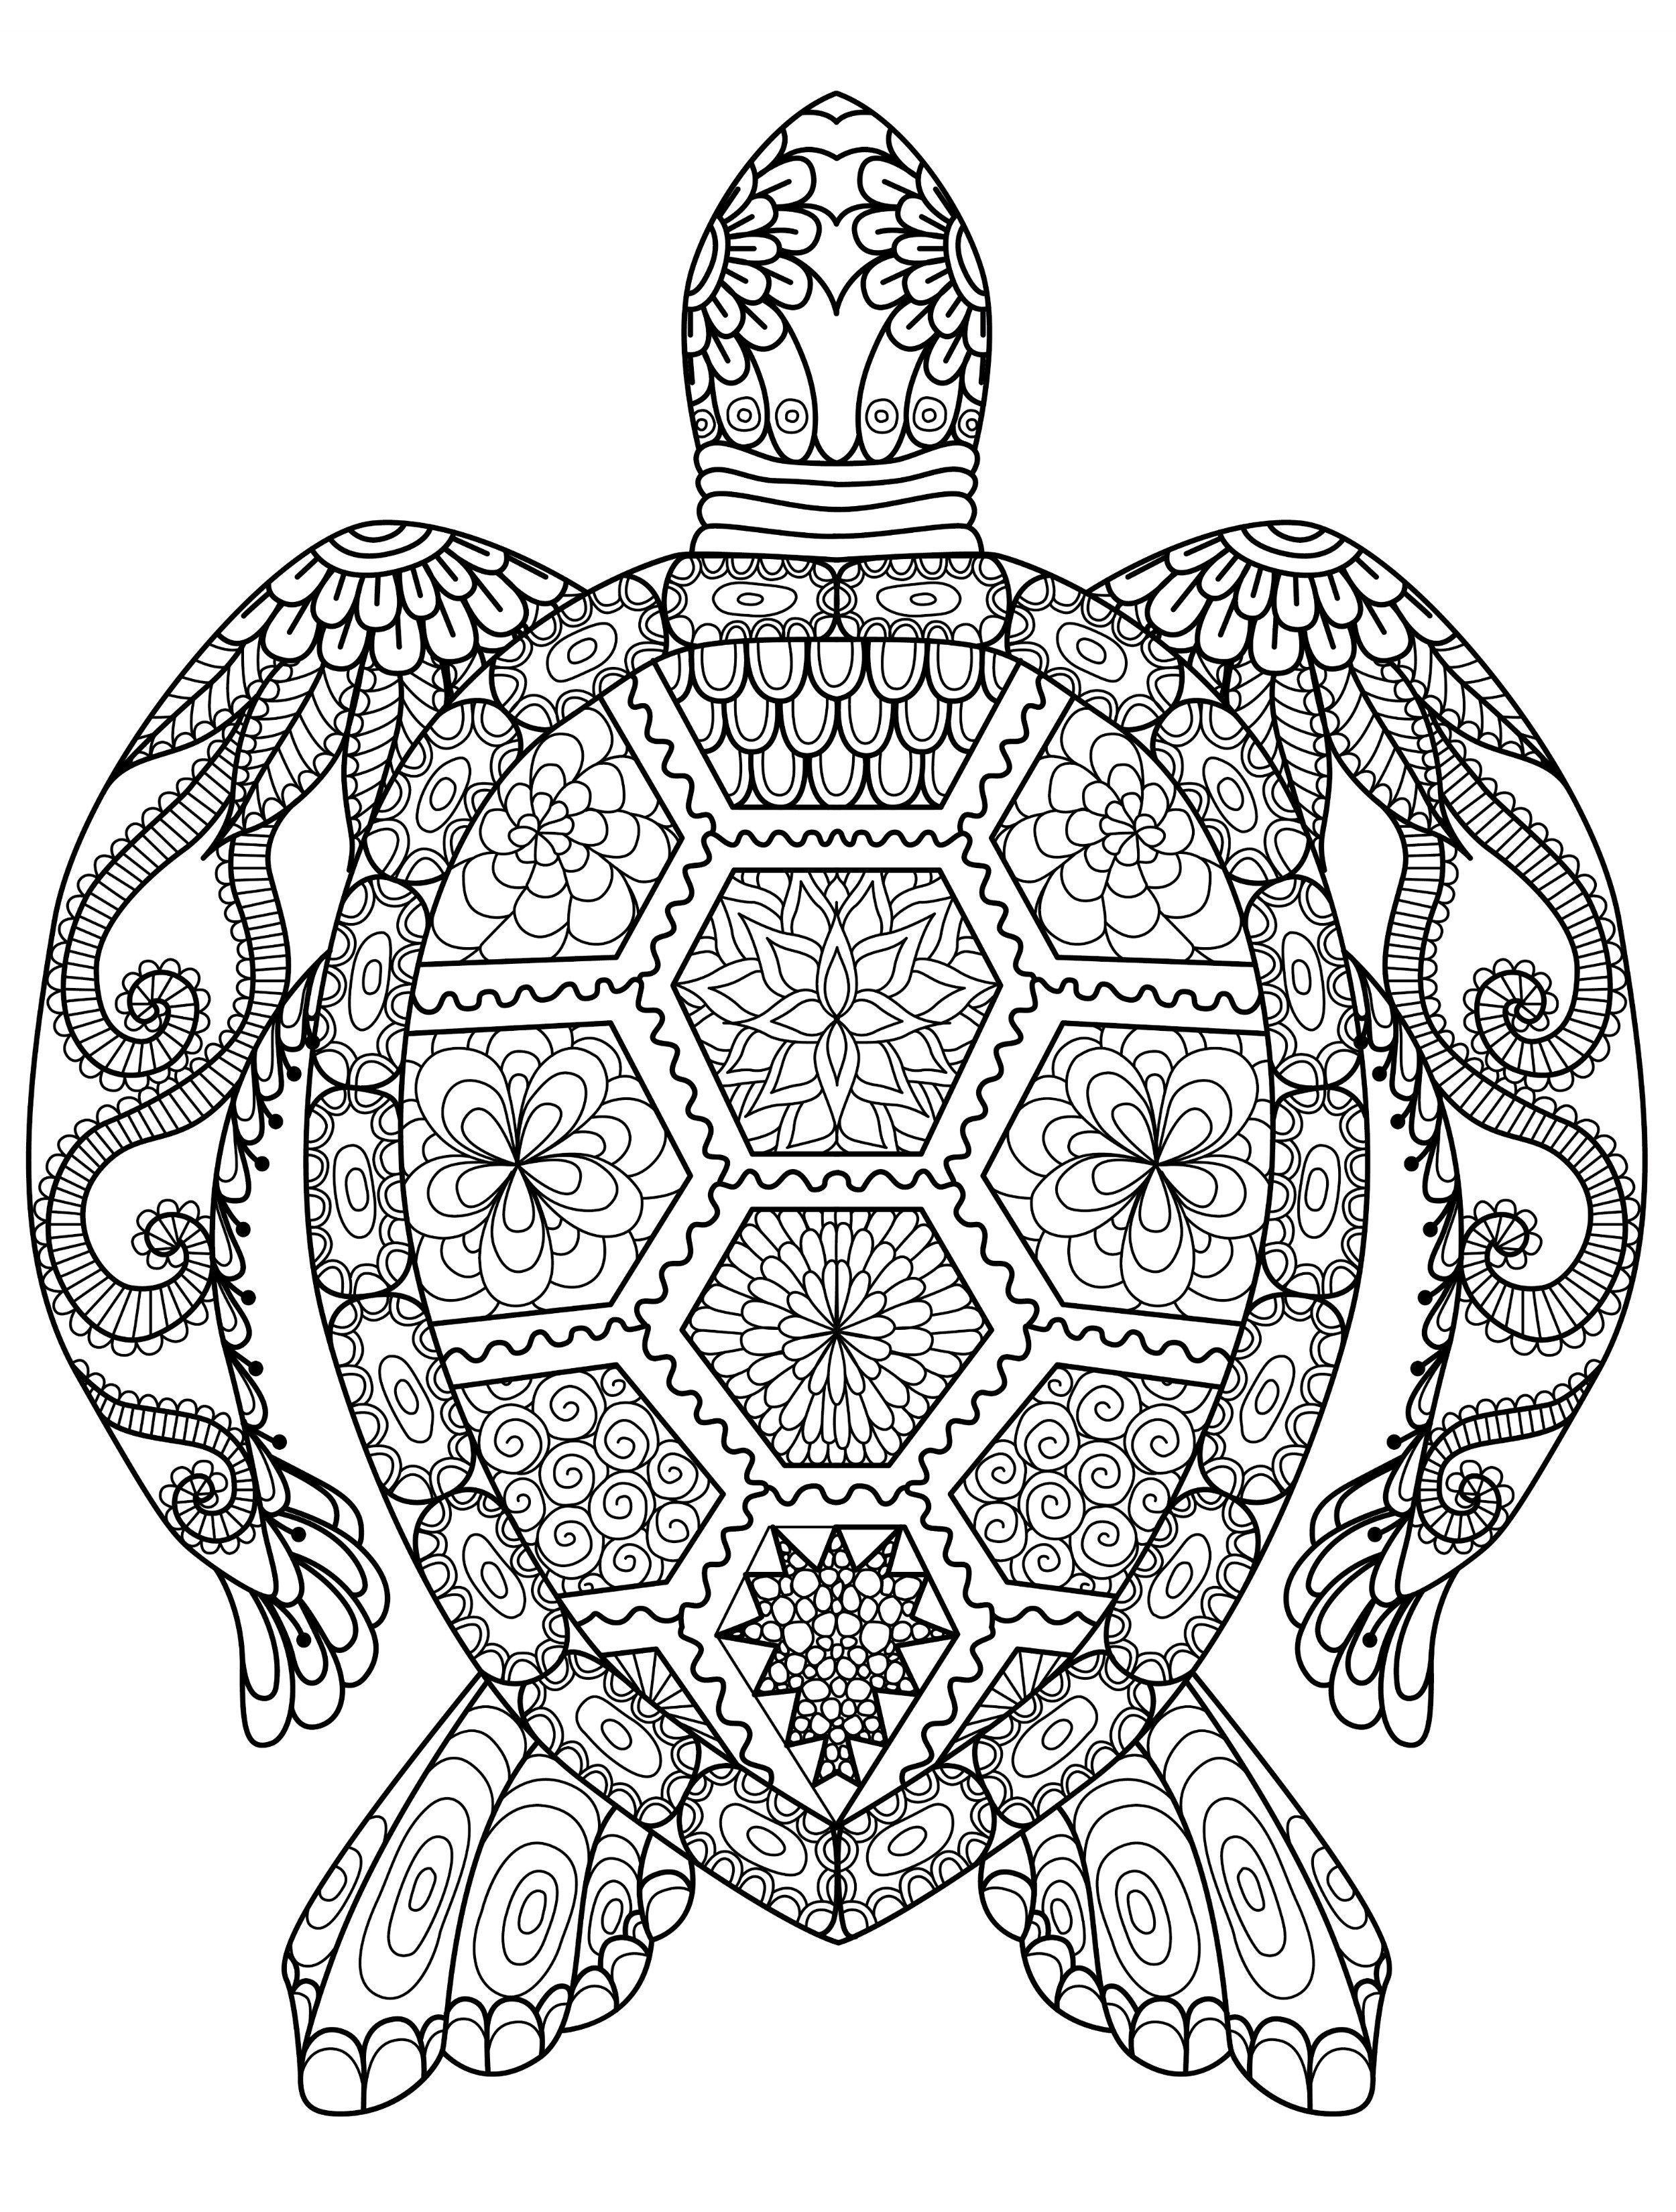 sea turtle coloring page for adults for free download #ColoringPages ...